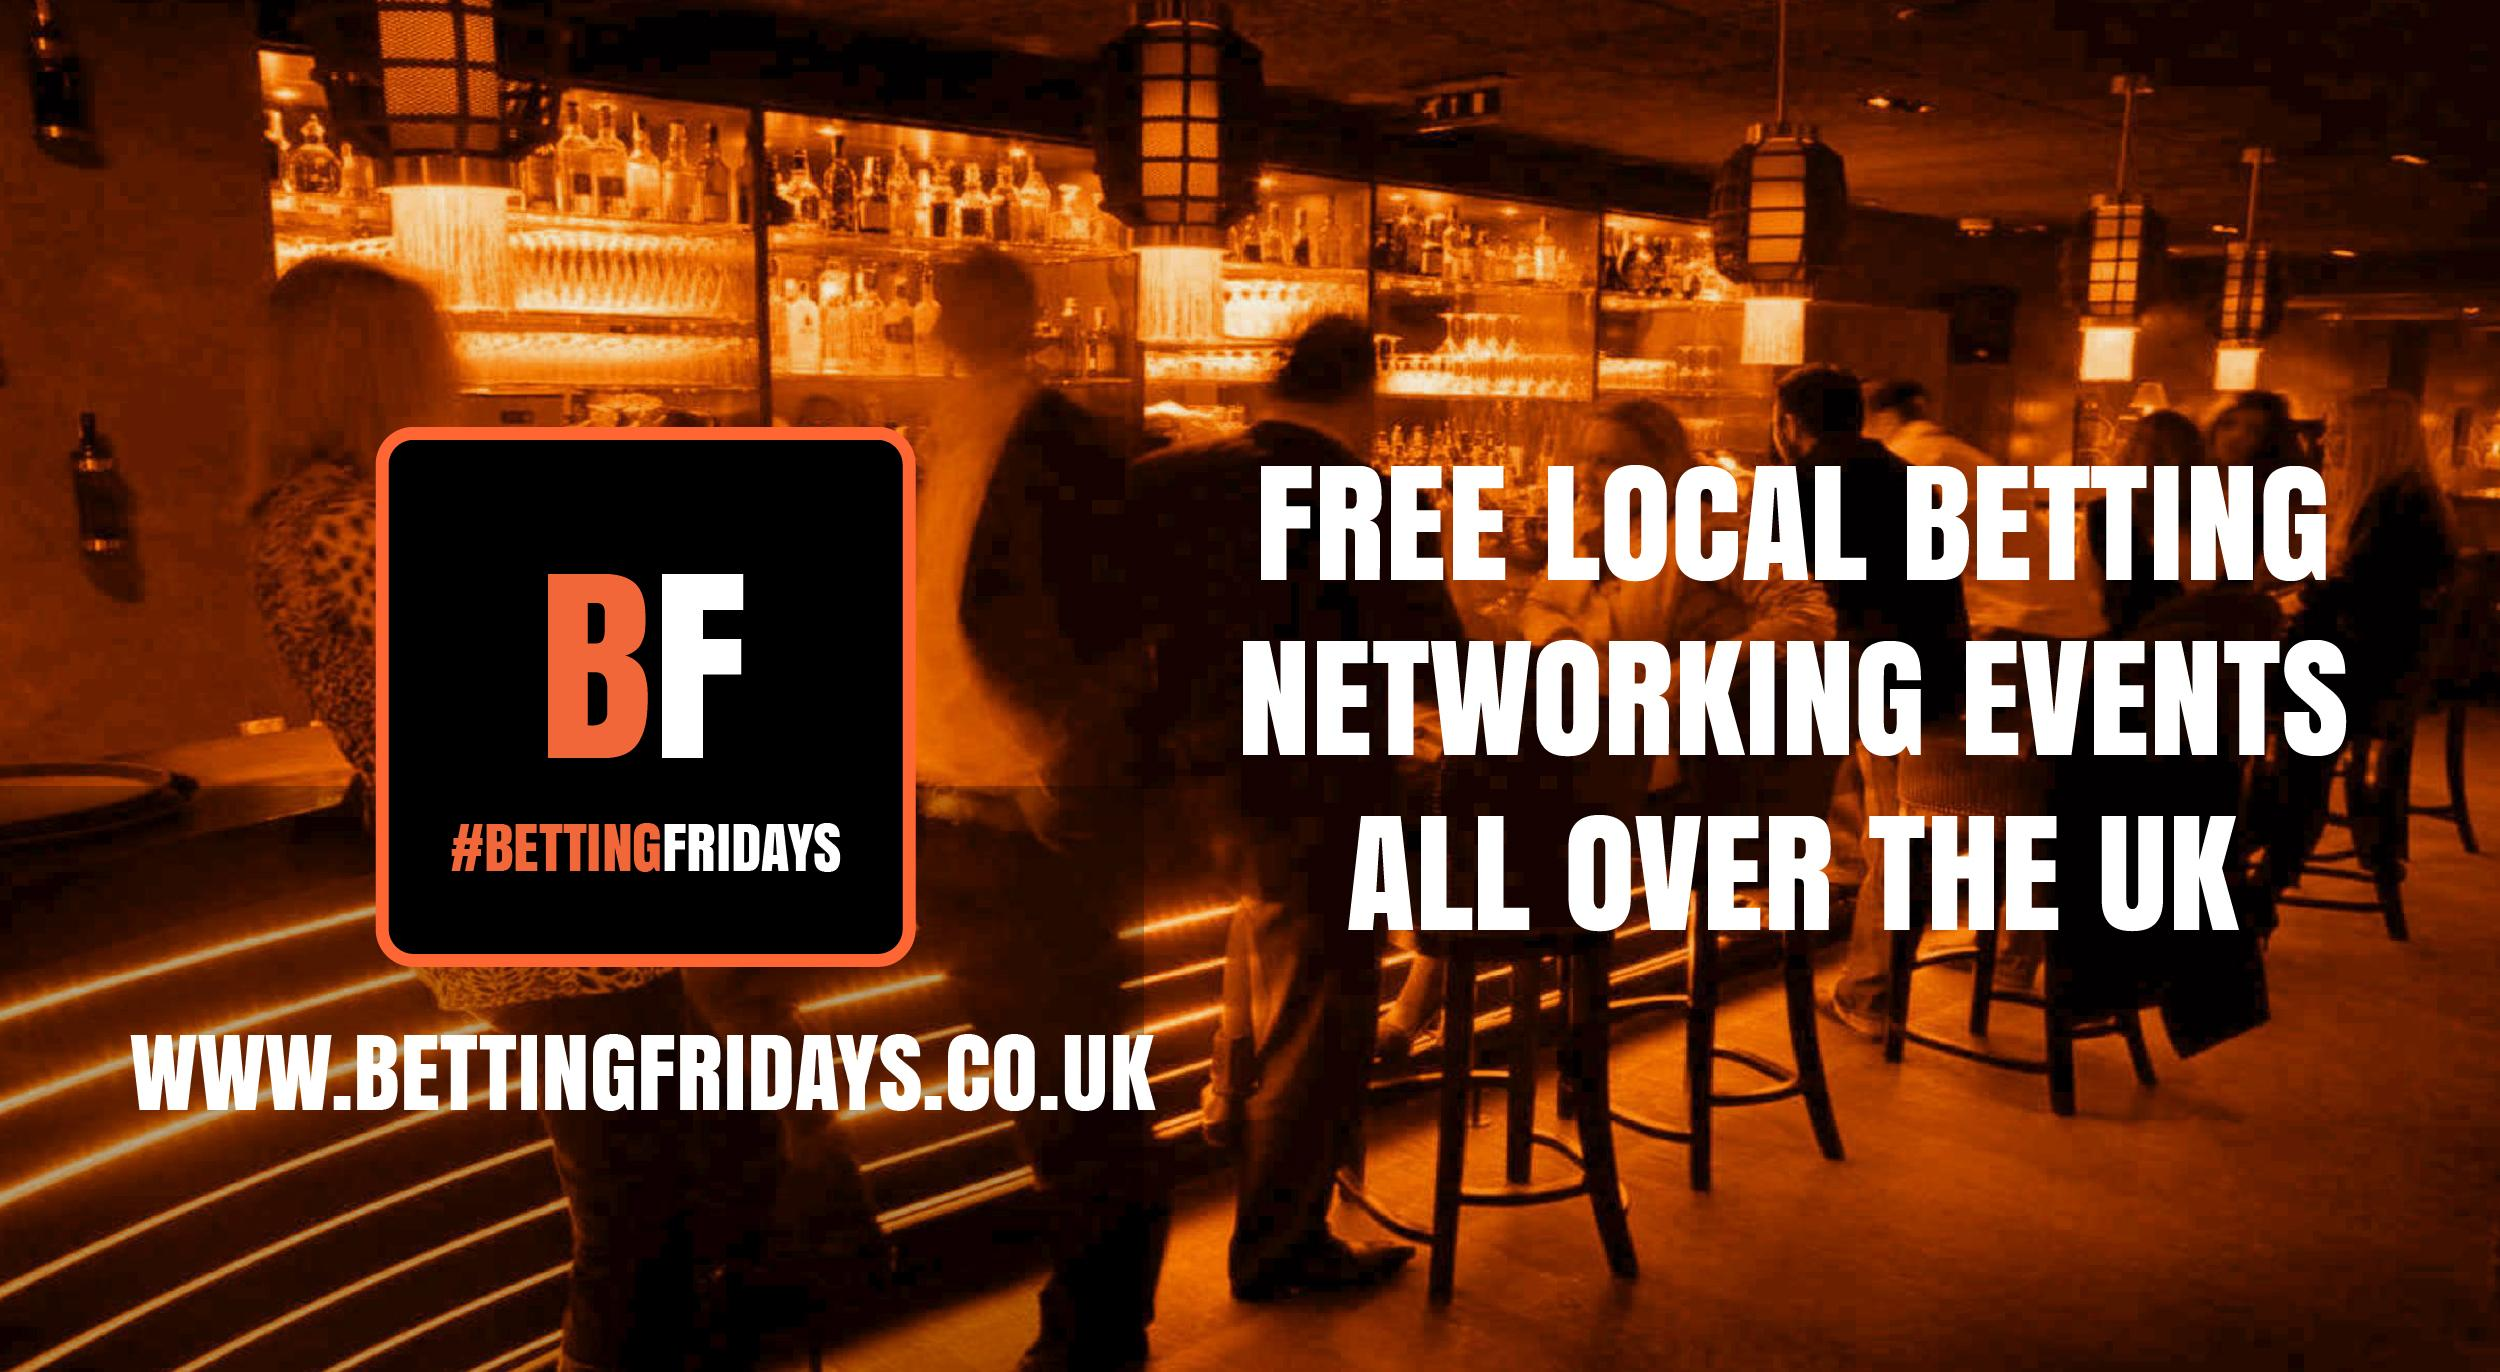 Betting Fridays! Free betting networking event in Tower Bridge (South)